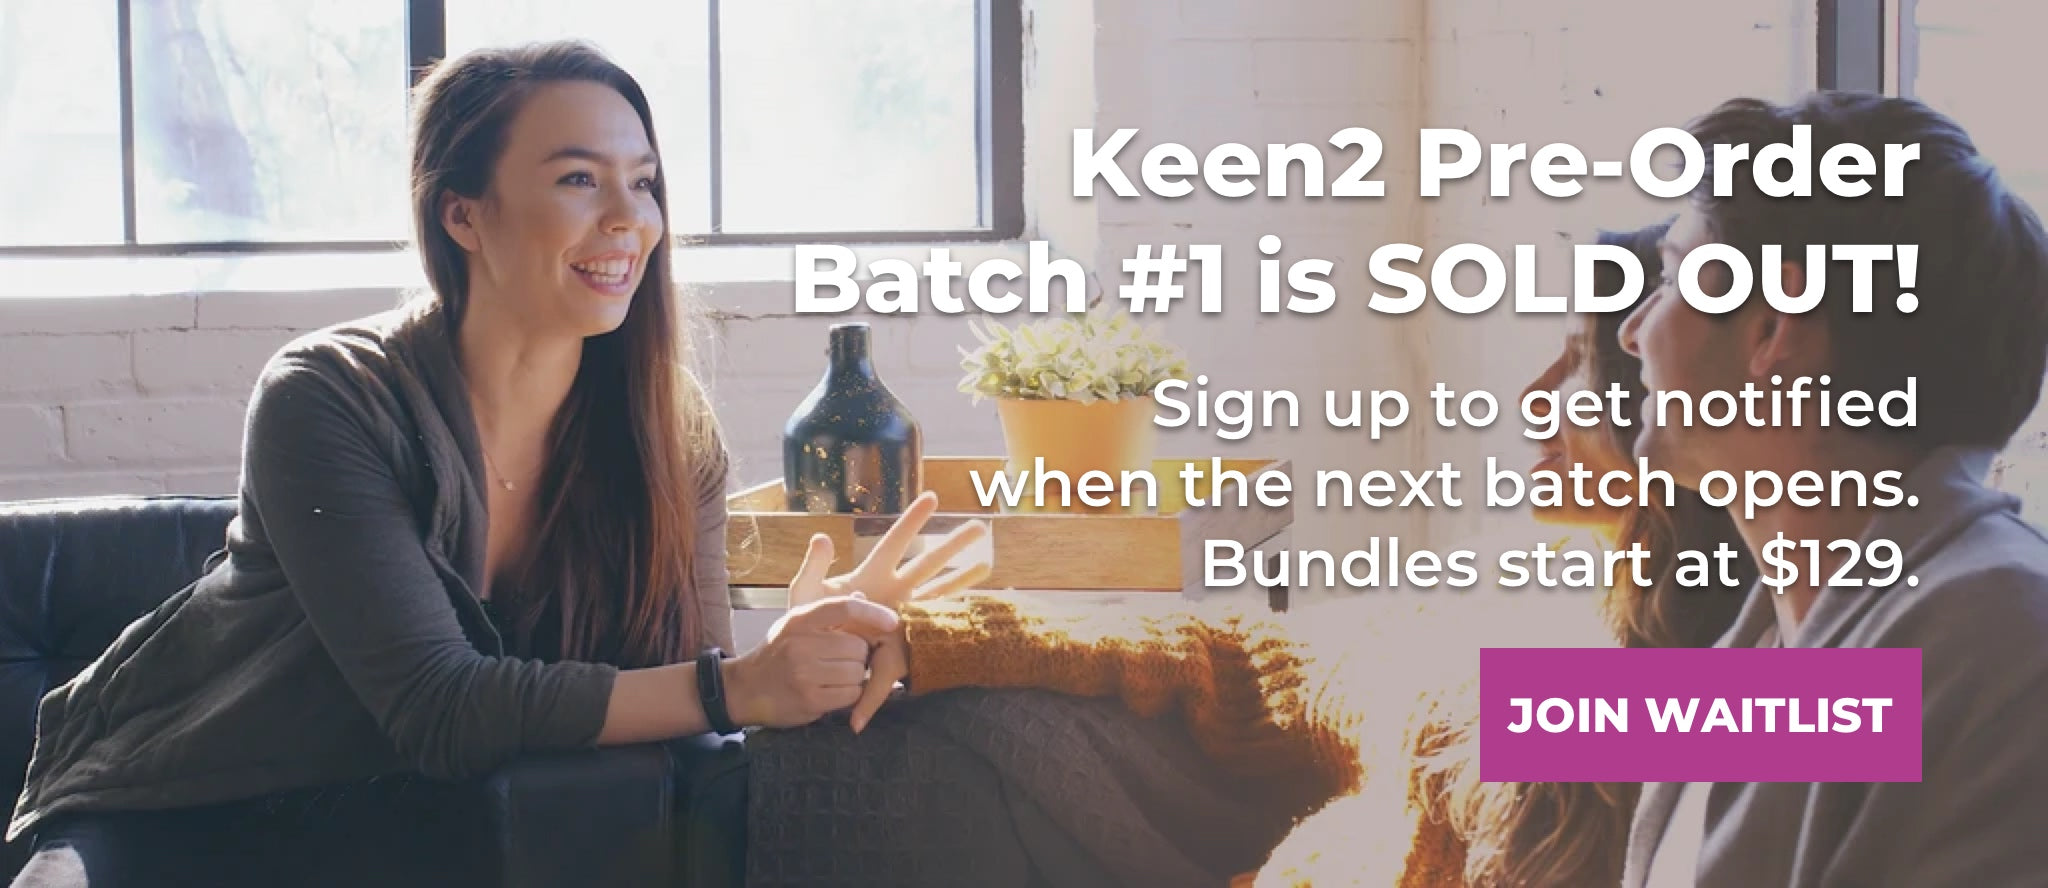 """HabitAware Keen2 is a """"Life Changing"""" Treatment for Trichotillomania. This batch is sold out. Sign up to get on the waitlist."""